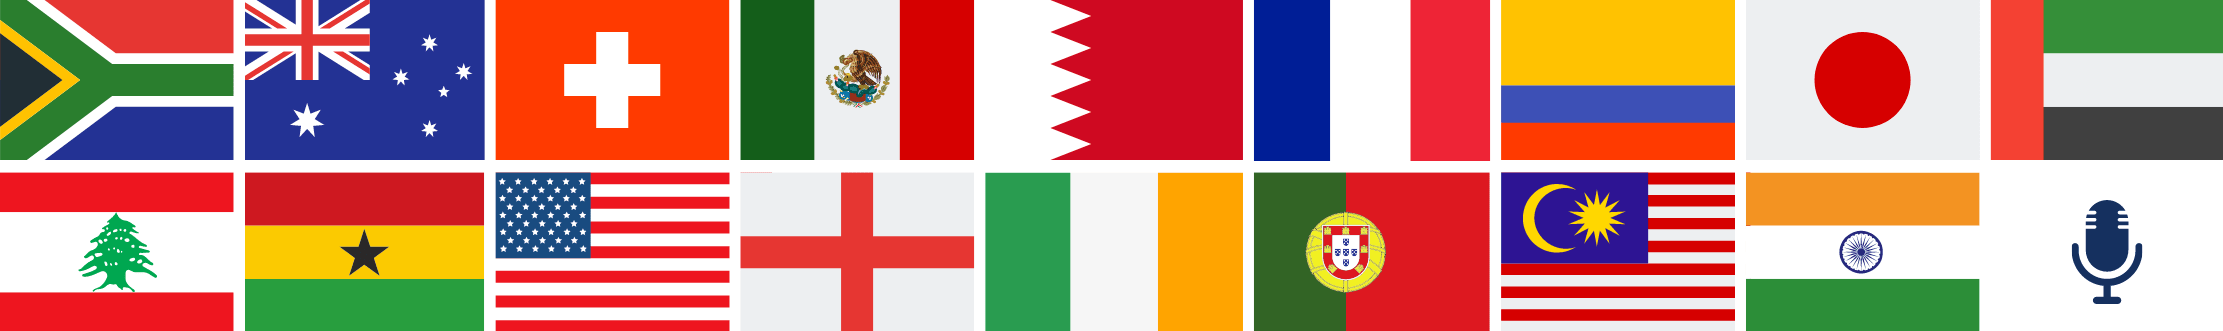 17 world flags